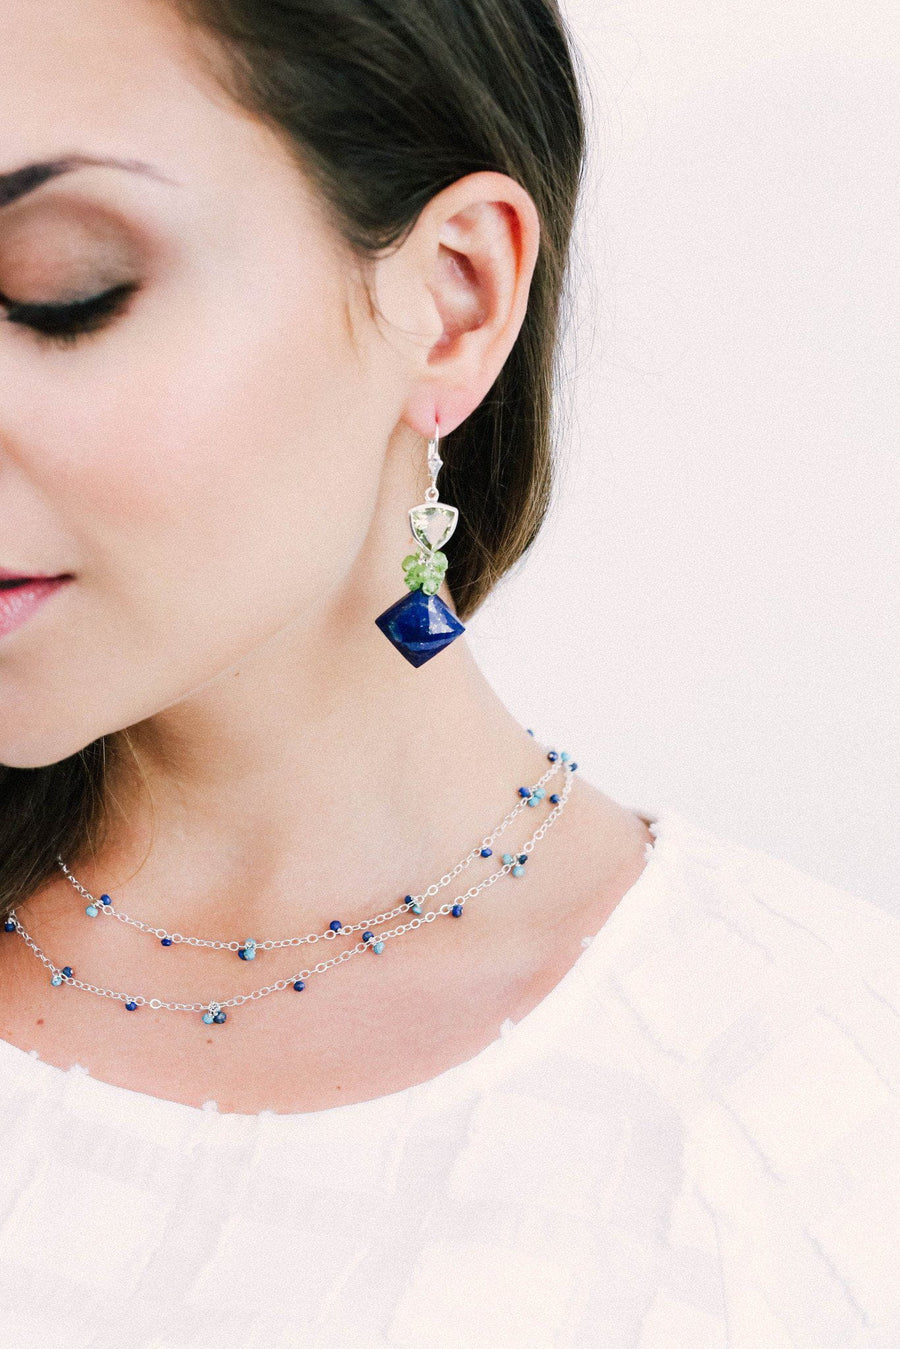 Lapis Fantasy with Lemon Earrings - Inaya Jewelry